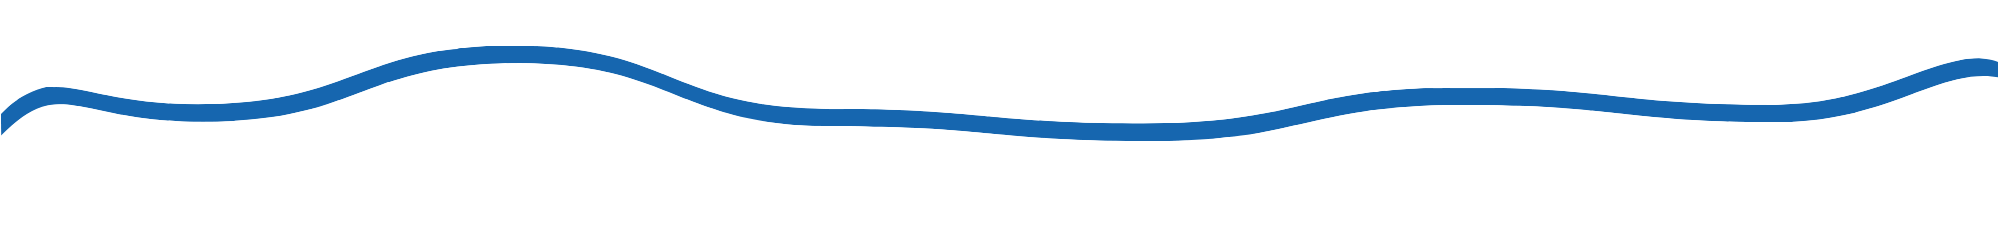 Blue_Line_Transparent.png